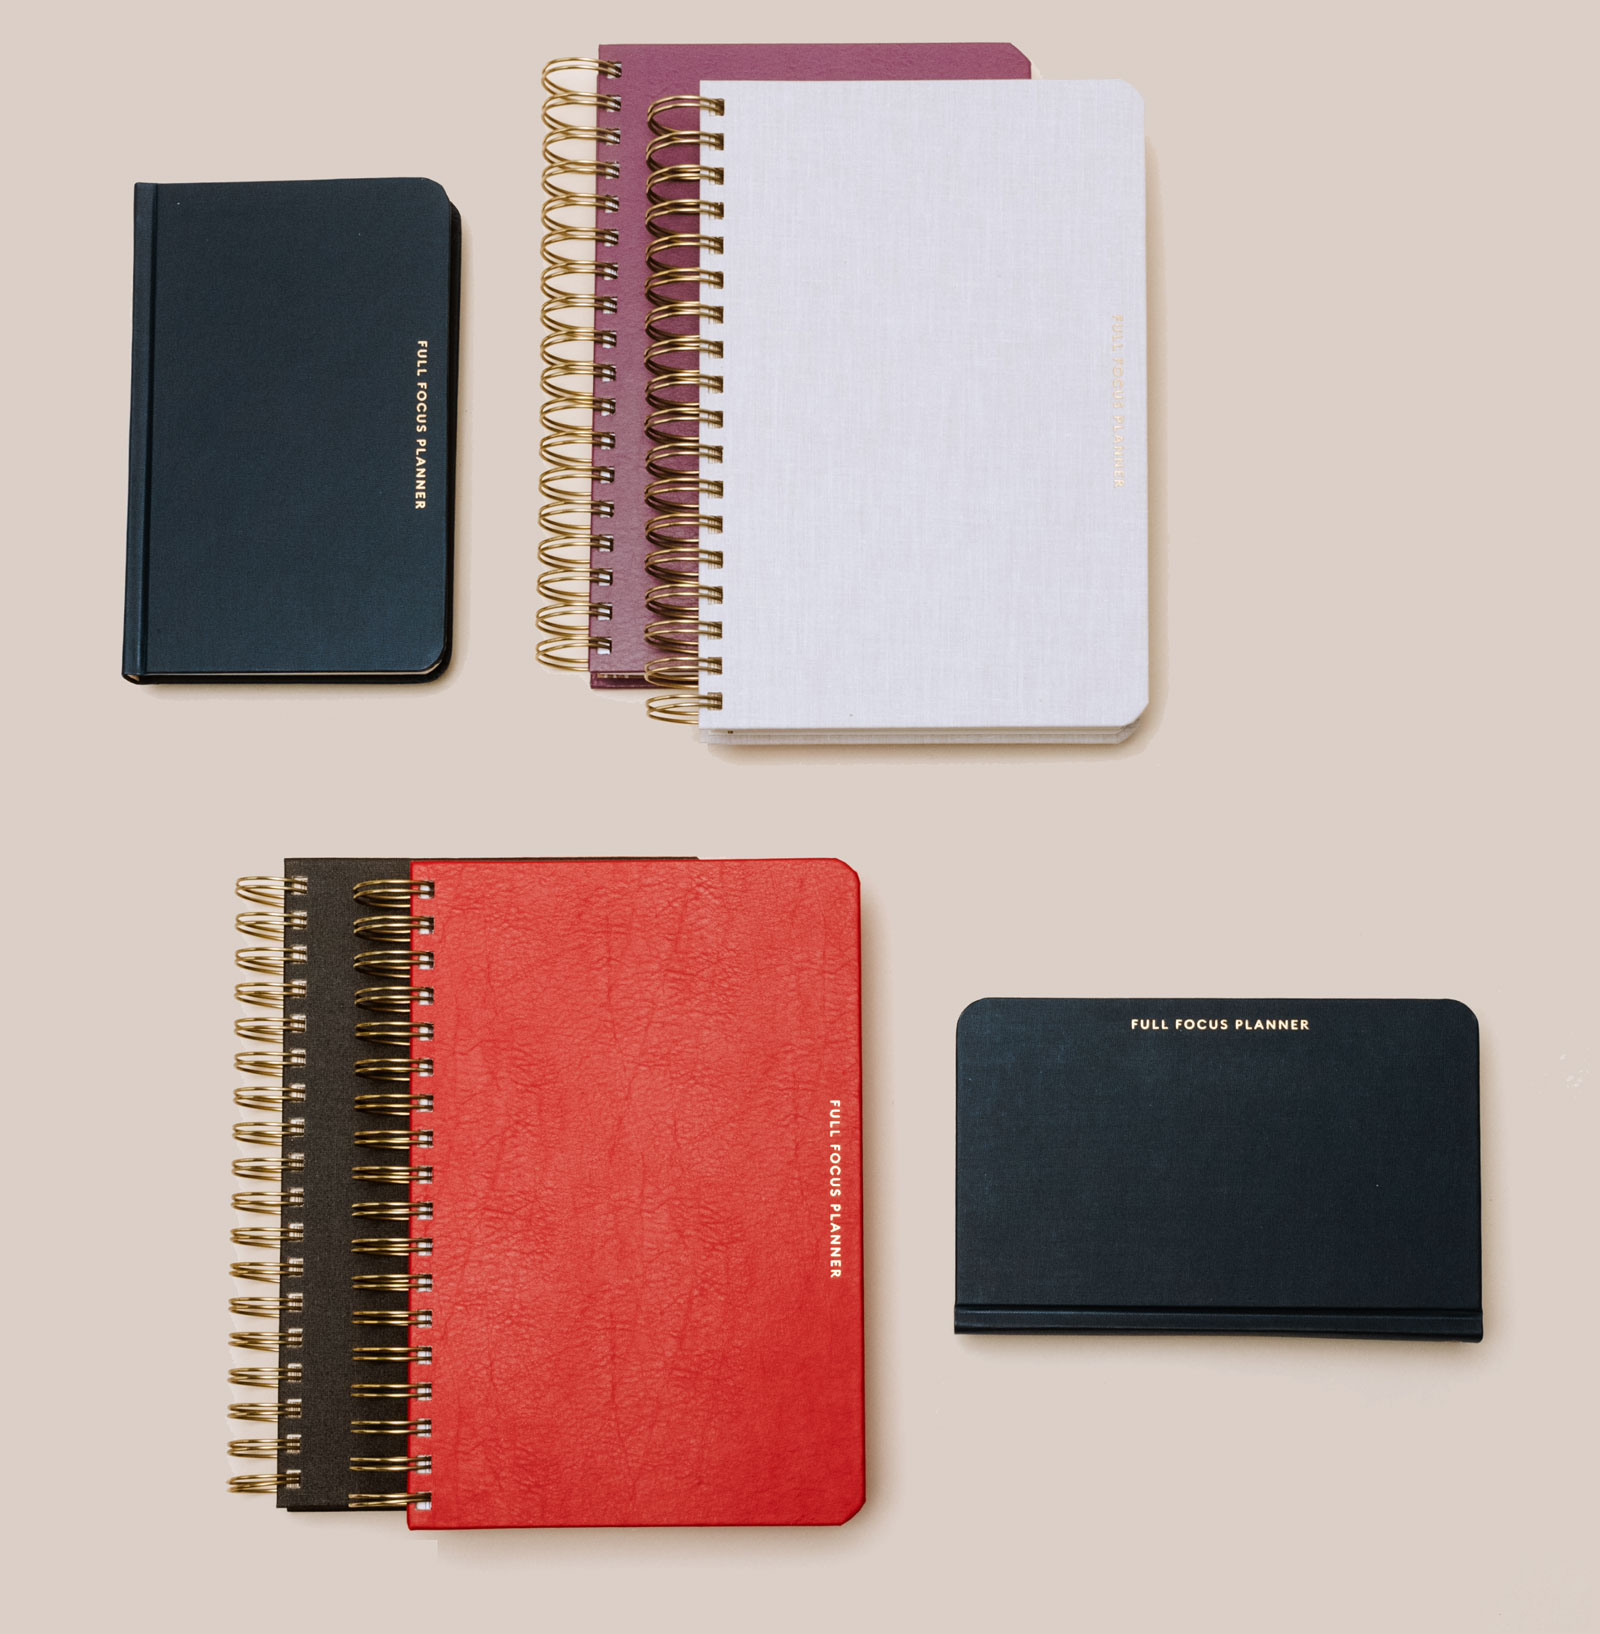 New Full Focus Planners - Best Daily Planner